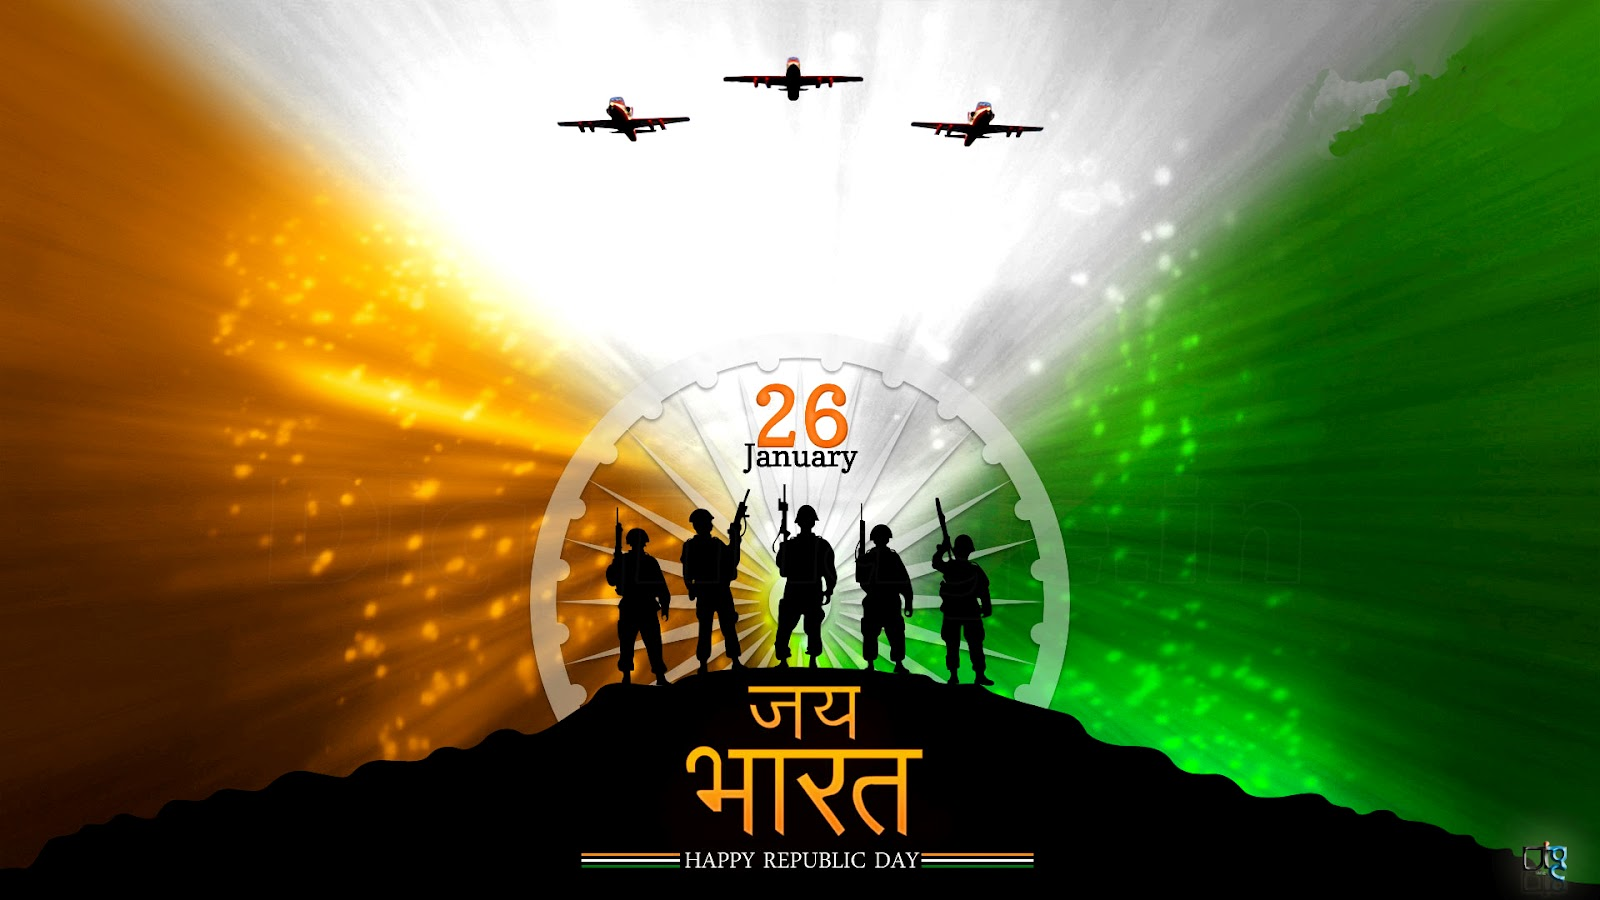 indian republic day in hindi On january 26, 1950, the indian constitution takes effect, making the republic of india the most populous democracy in the worldmohandas gandhi struggled through decades of passive resistance before britain finally accepted indian independence.